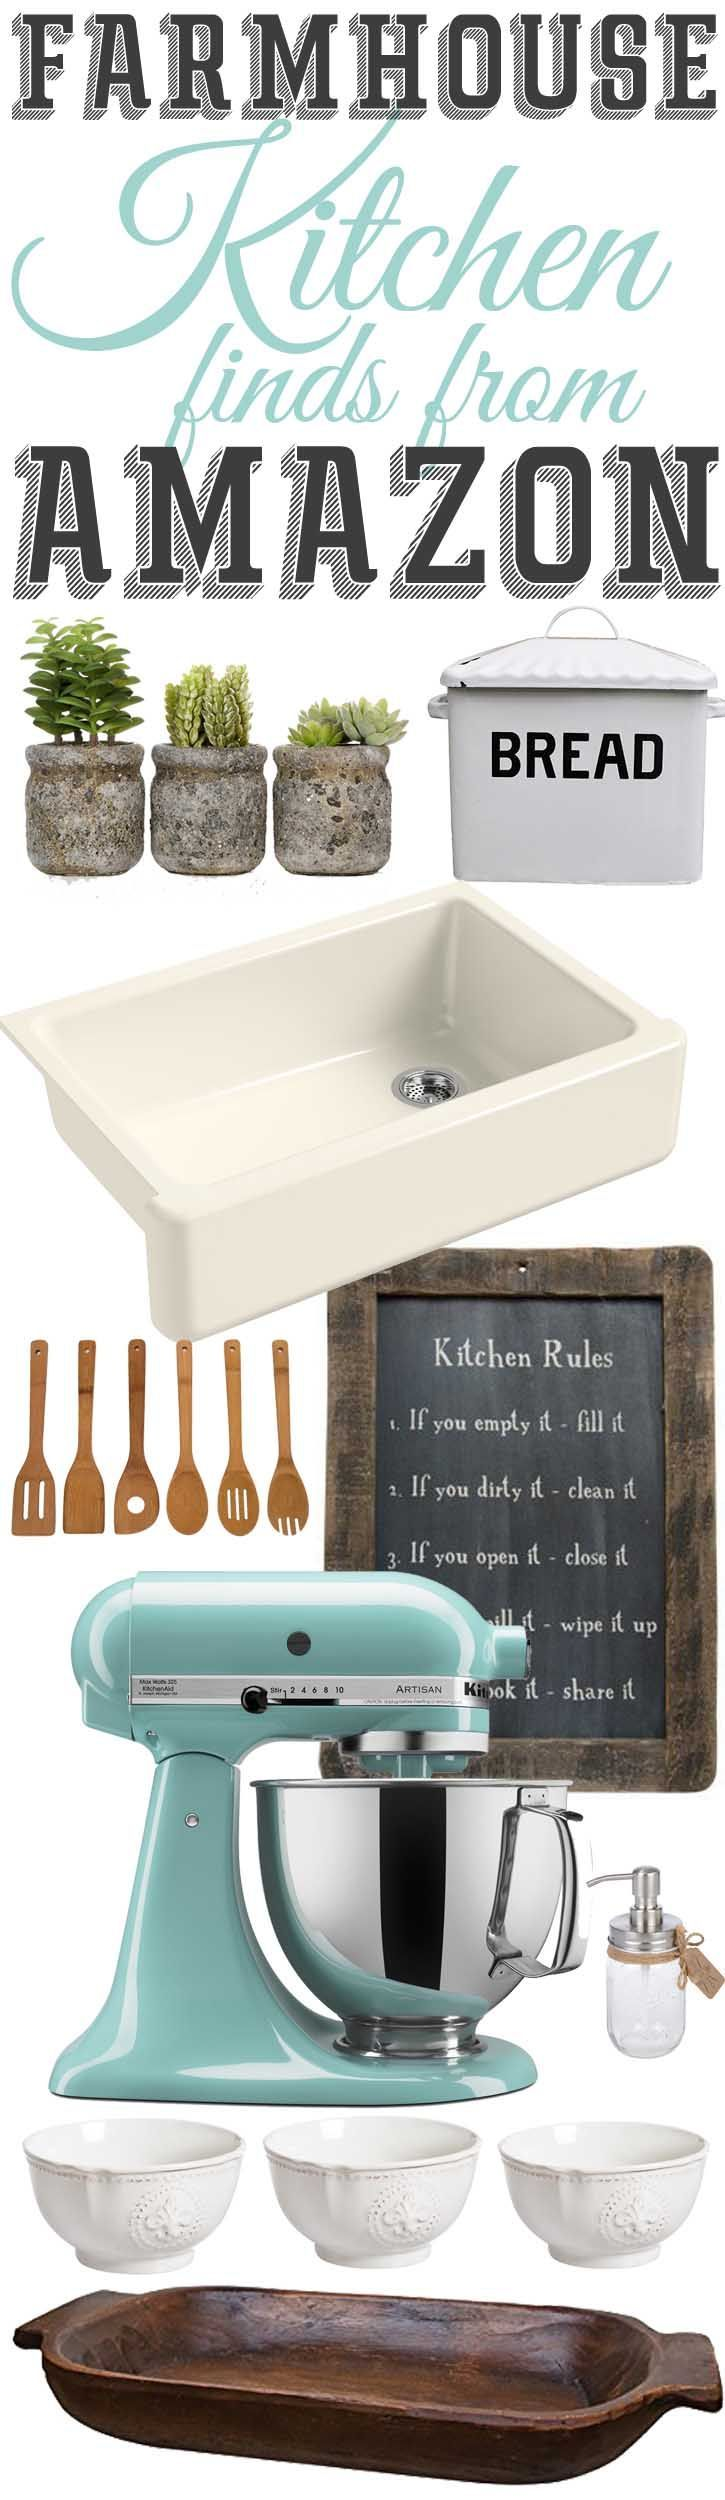 Farmhouse kitchen finds found on Amazon.com. I've gotta look into these! Best online farmhouse decor ideas.